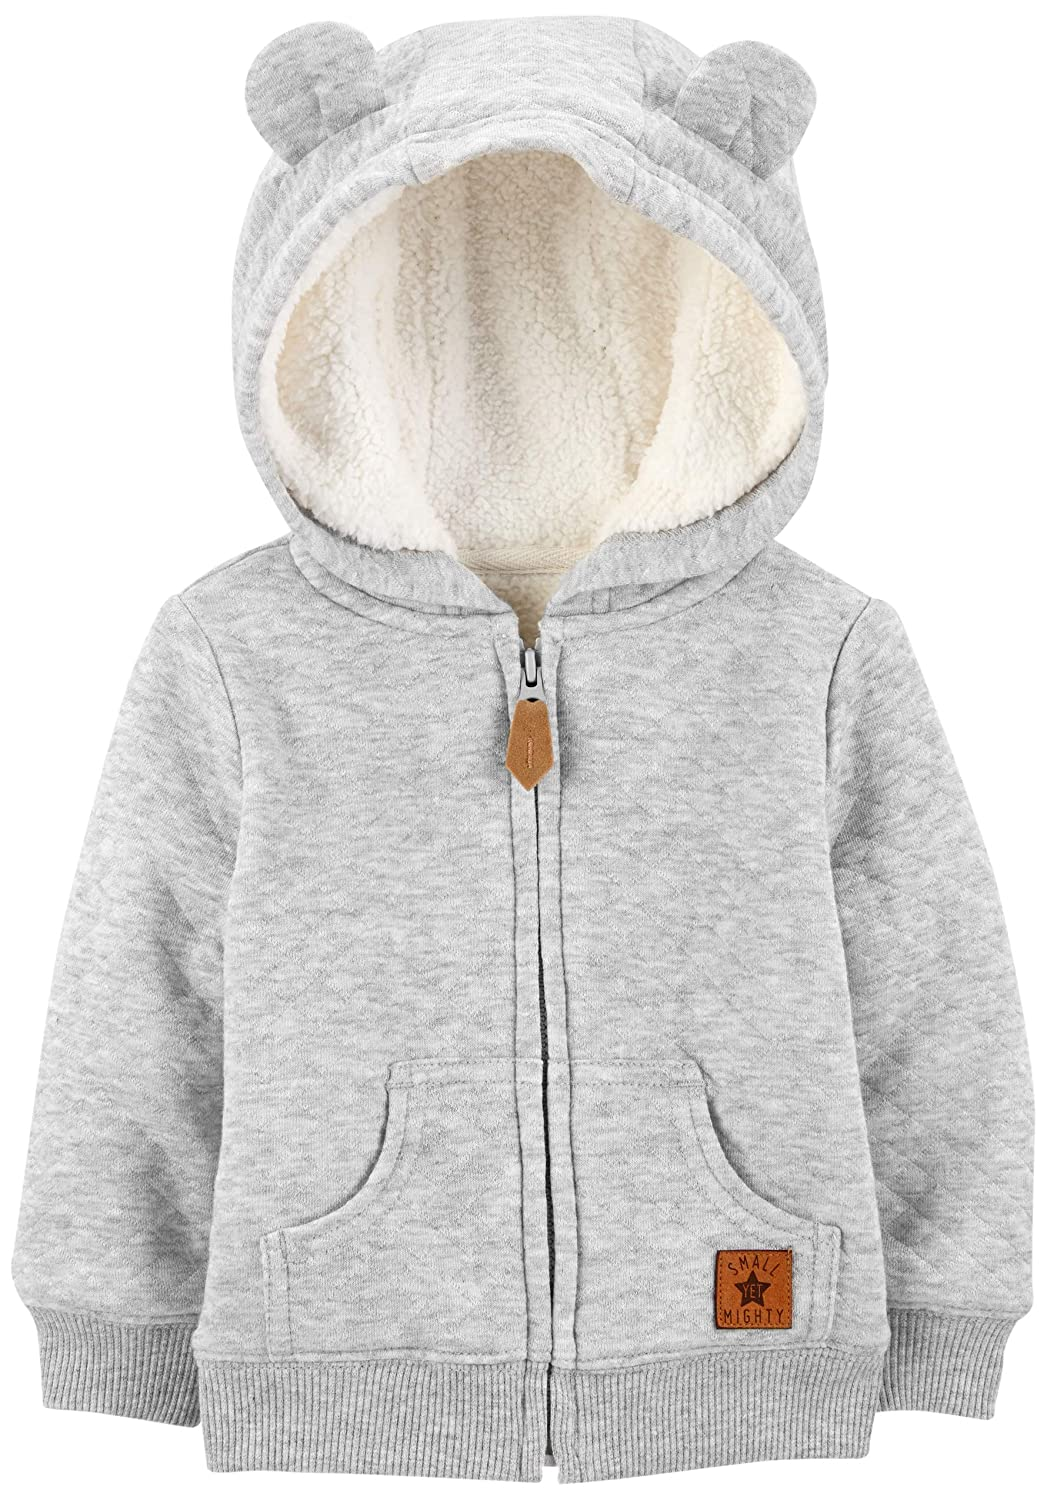 Simple Joys by Carter's Baby Boys' Hooded Sweater Jacket with Sherpa Lining